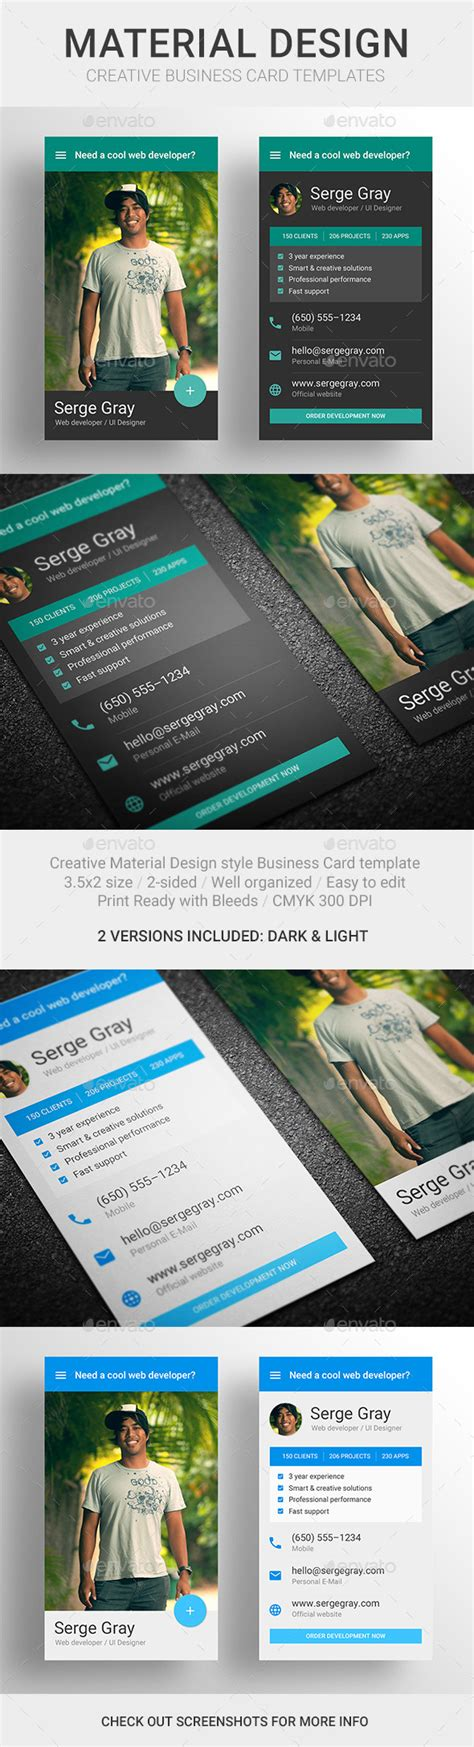 material design business card template free made material design business card template graphicriver